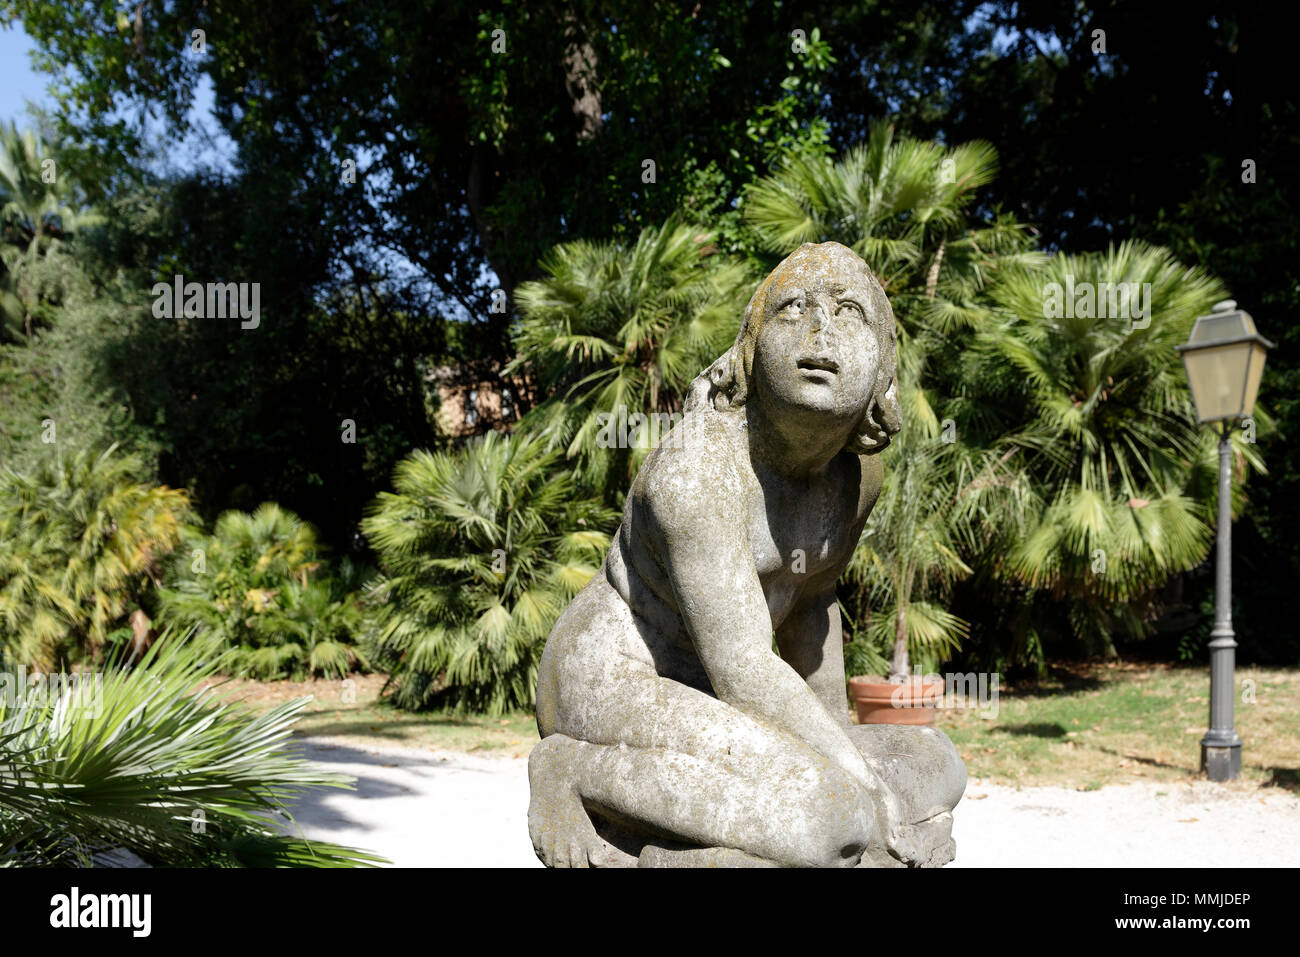 Post classic marble statue of couching Boy at the Orto Botanico di Roma or Rome's Botanical Garden. Located on the lower slopes of Gianicolo or Janicu - Stock Image